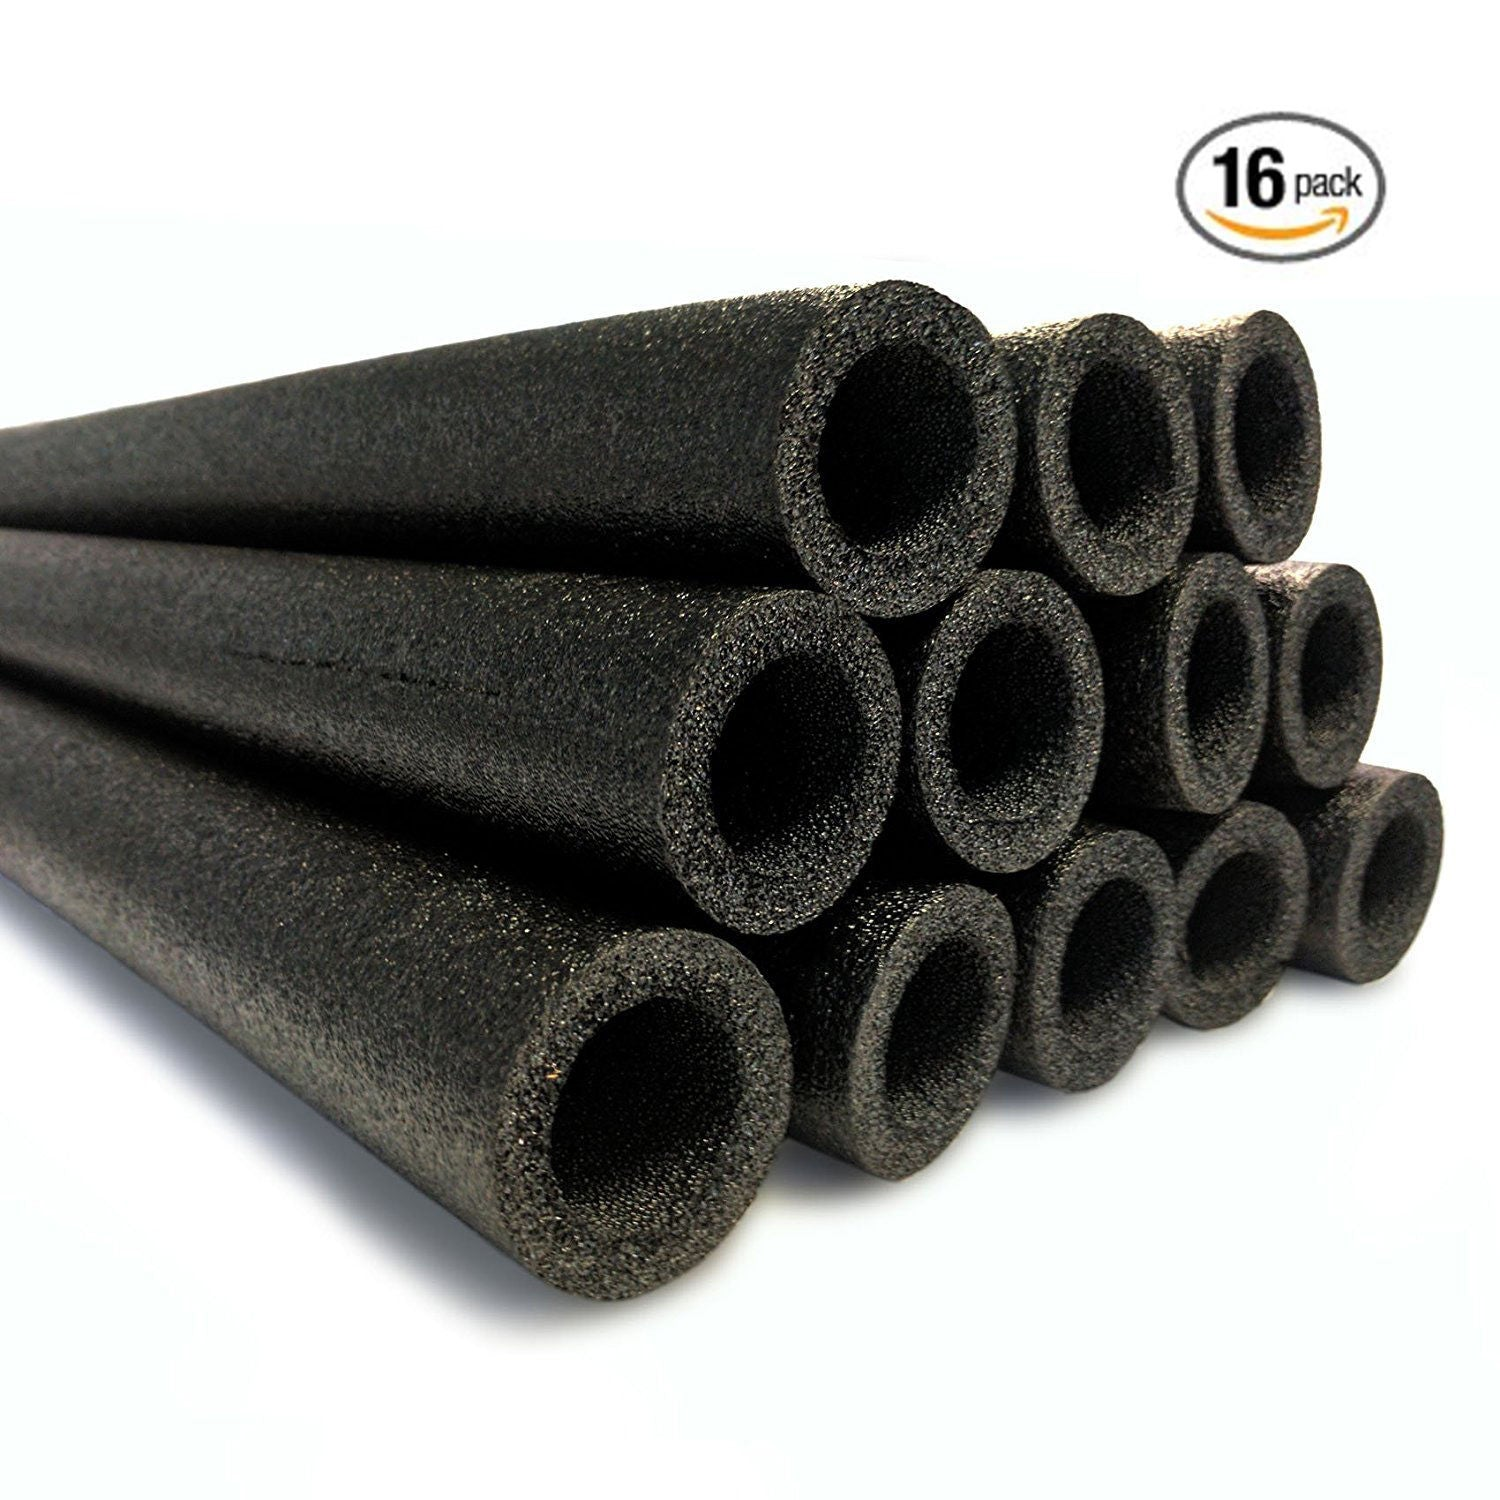 Trampoline Enclosure Pole Foam 38""